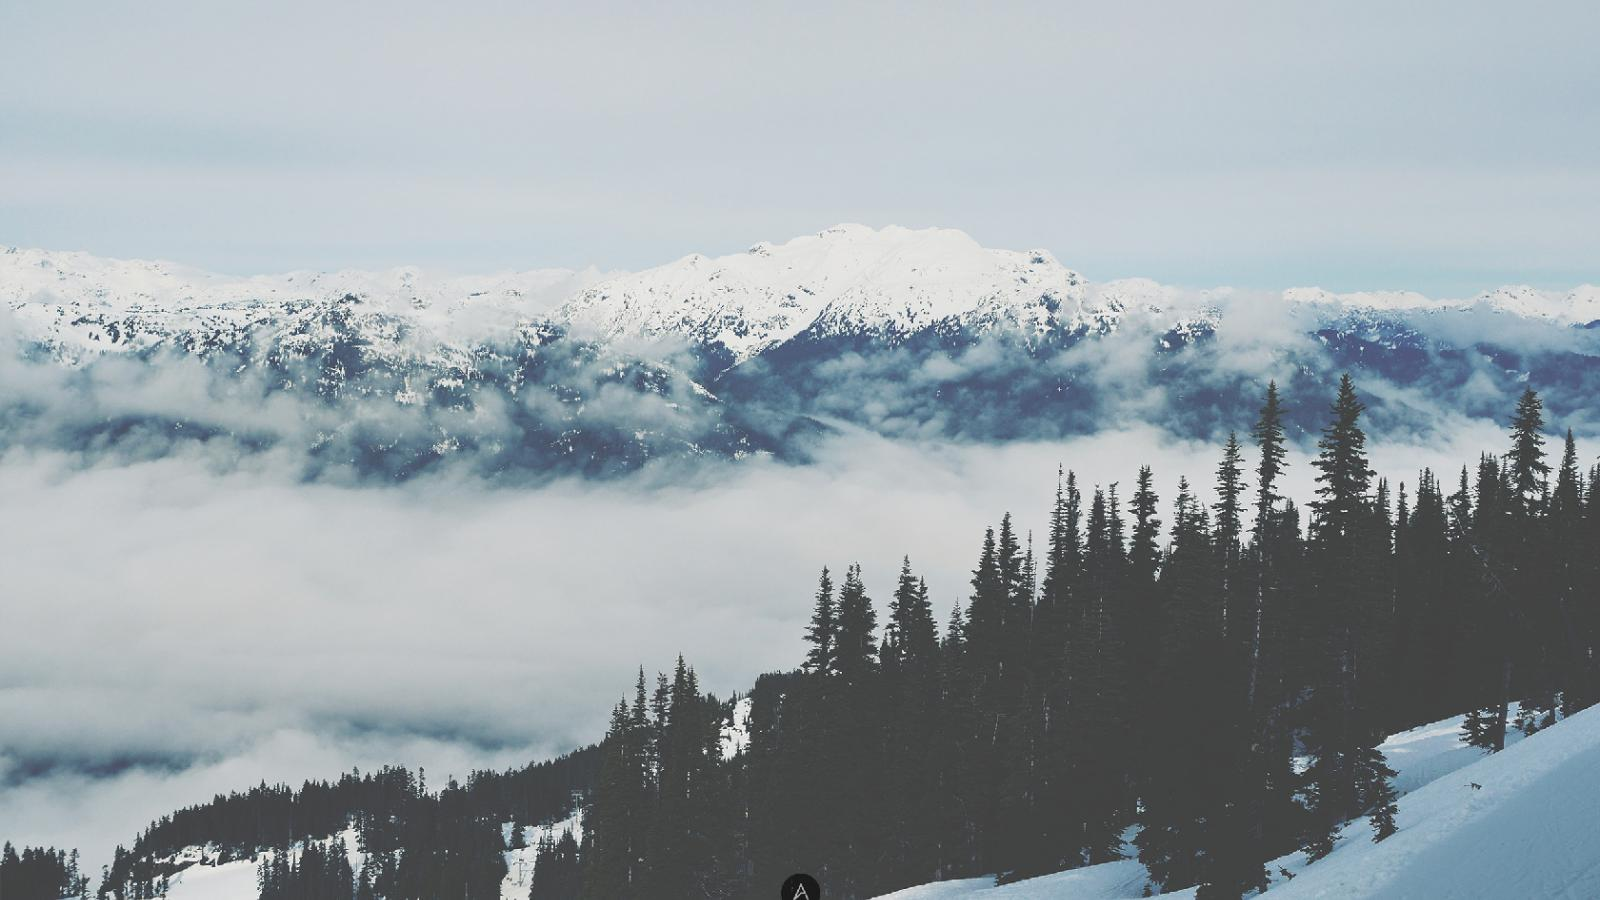 Wallpaper of the Week - Whistler